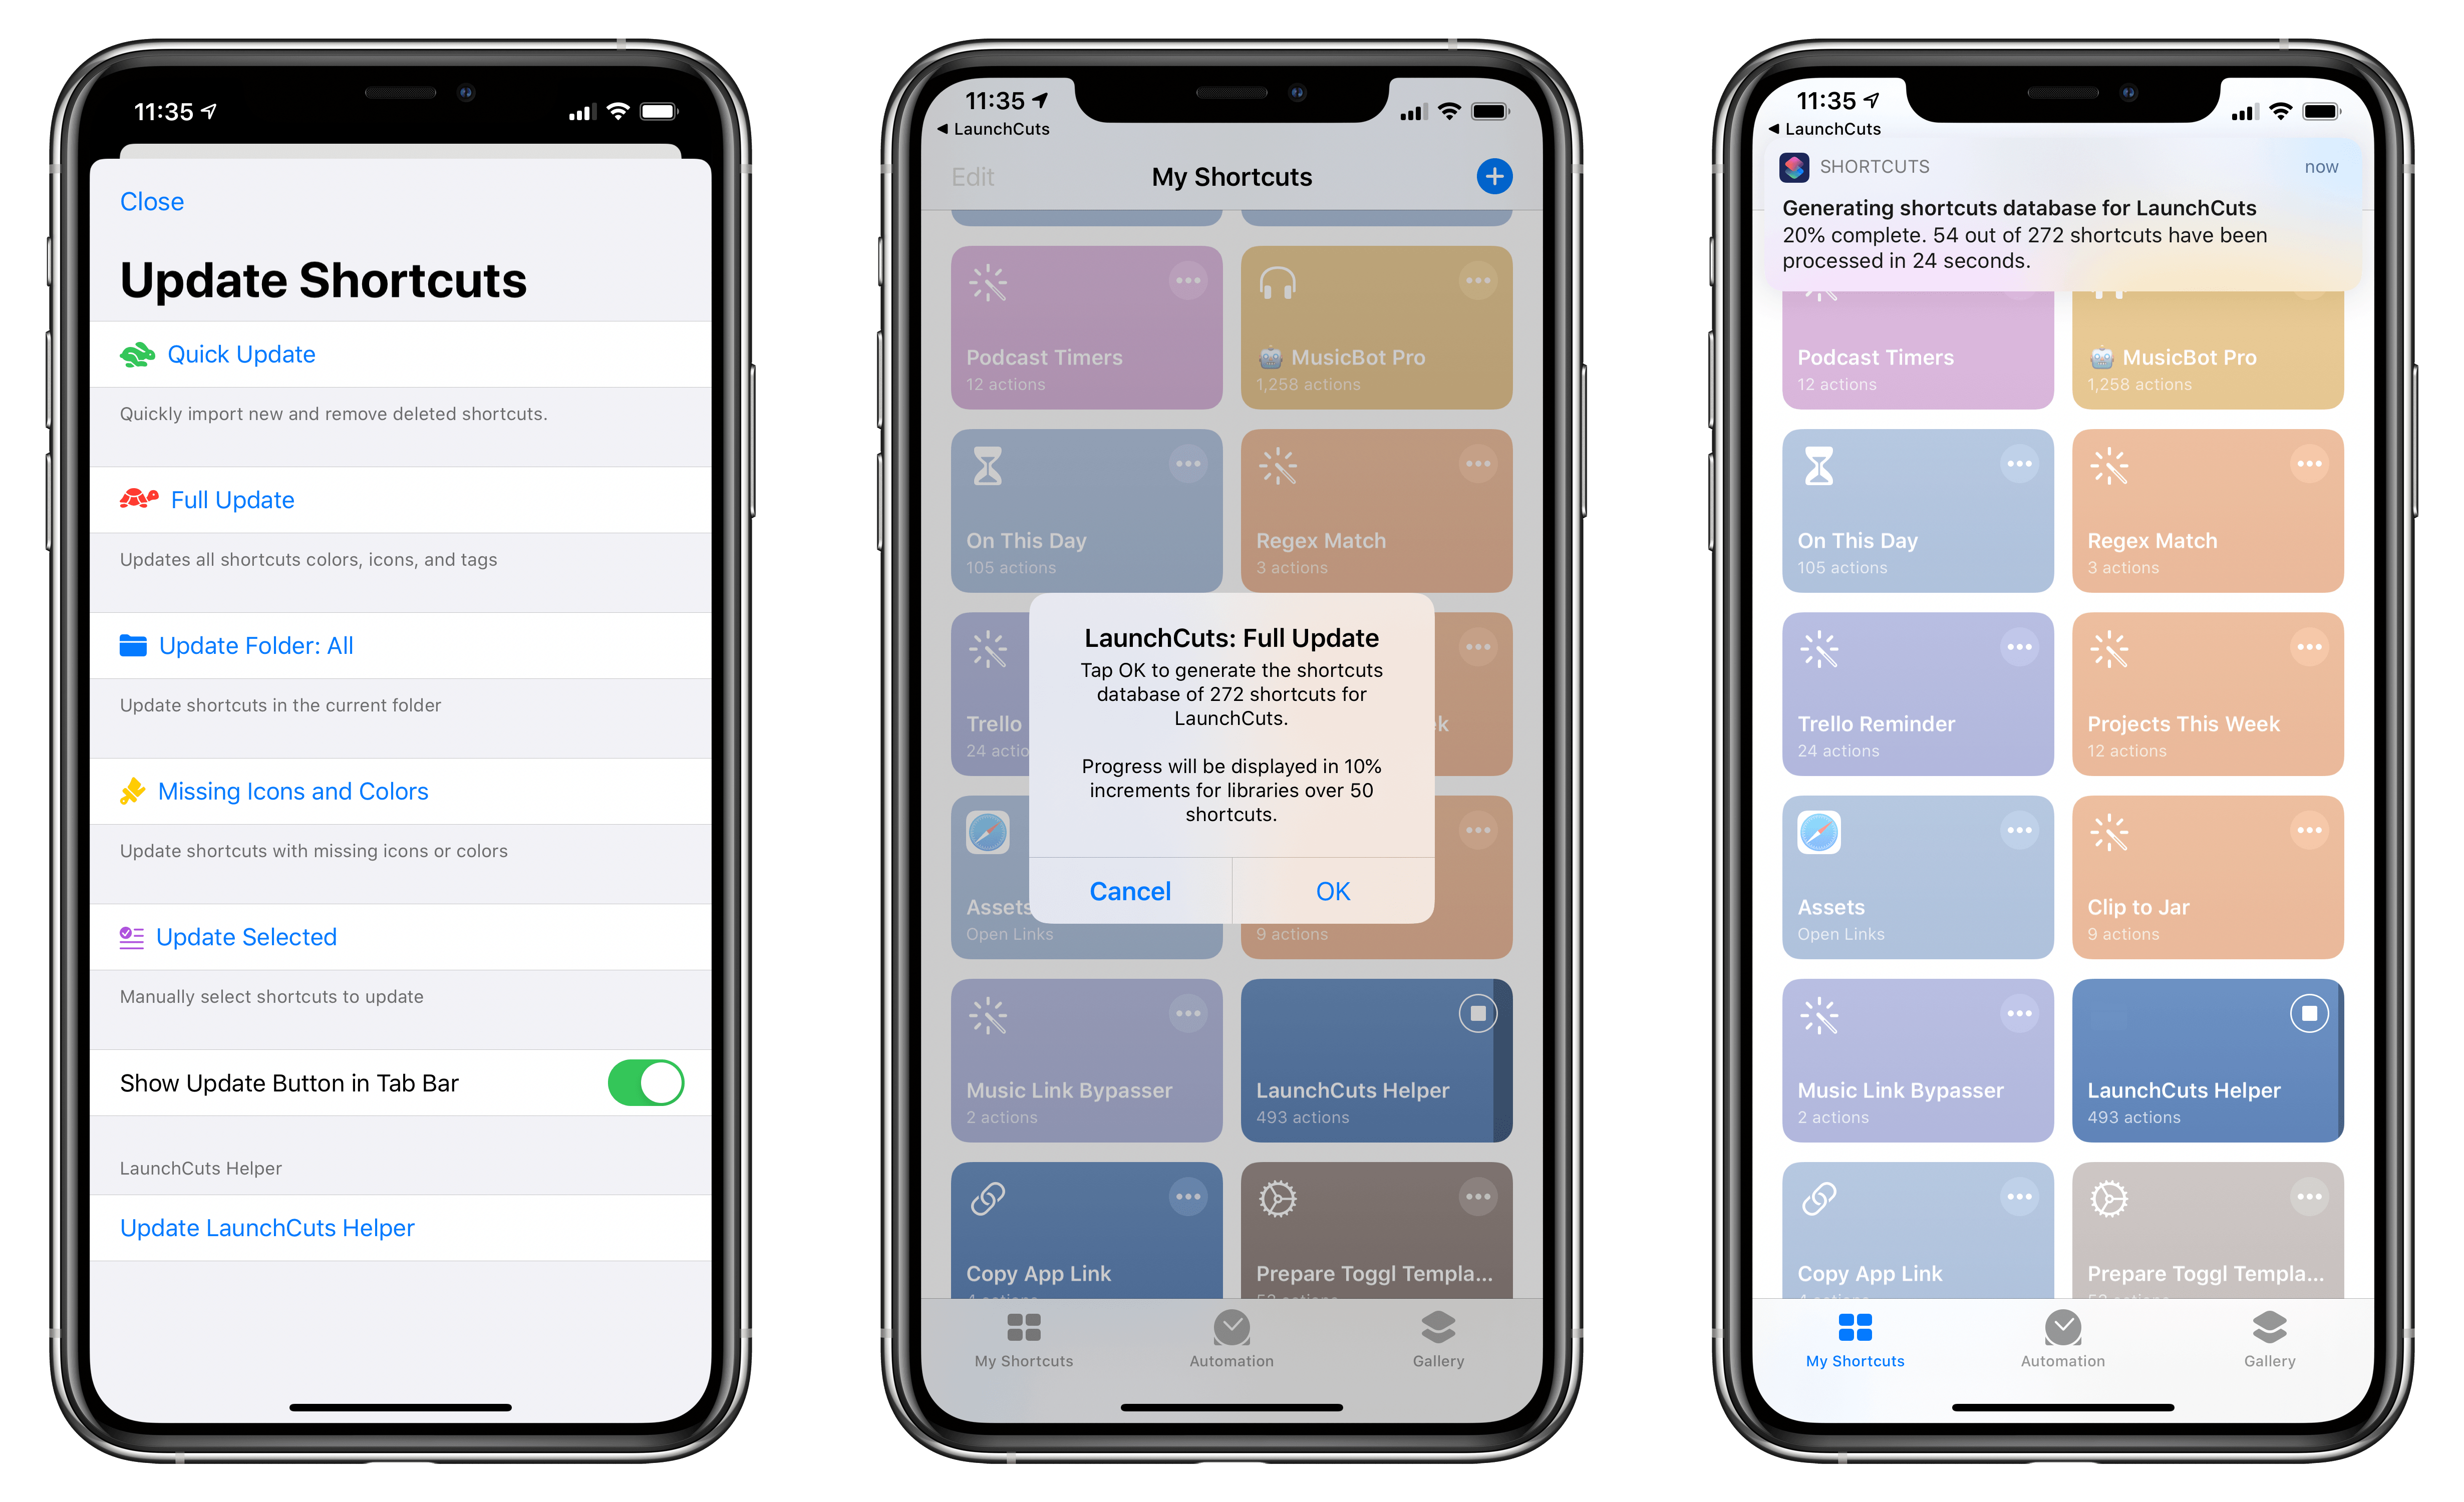 Running the LaunchCuts Helper shortcut to update the app's database of your installed shortcuts.